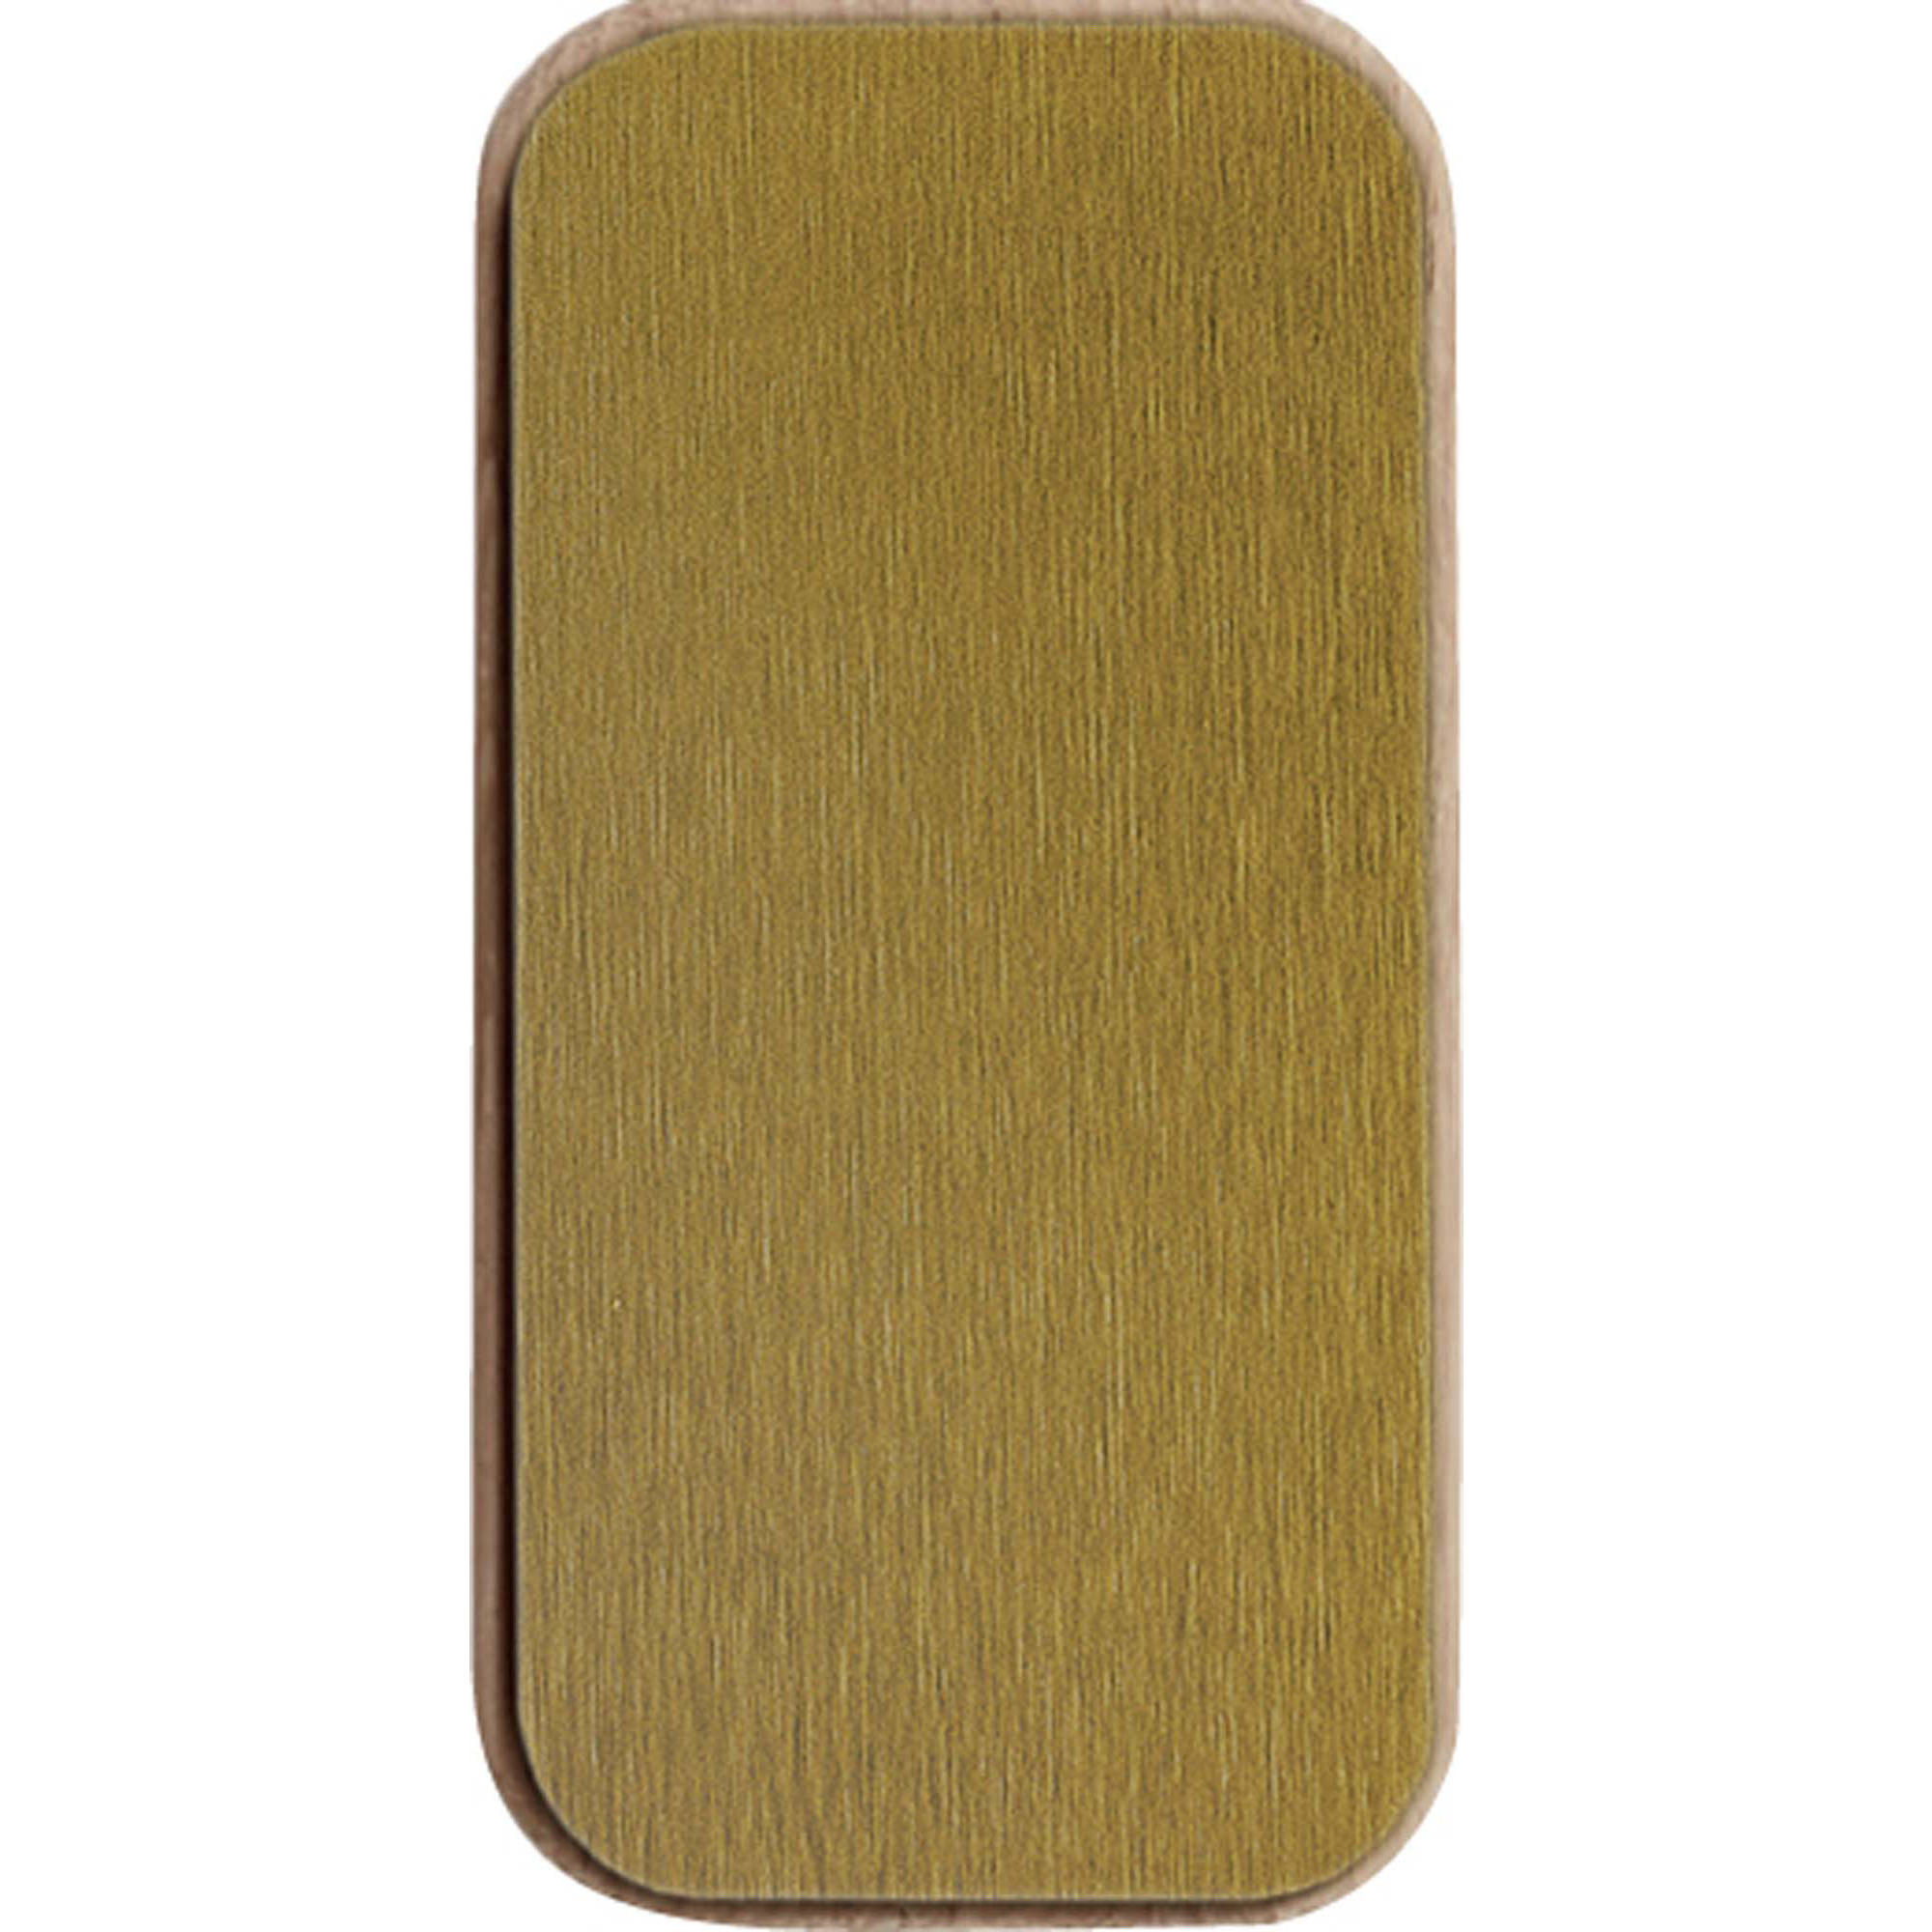 Bilde av Andersen Furniture Create Me Lokk 6 X 12 Cm Brass